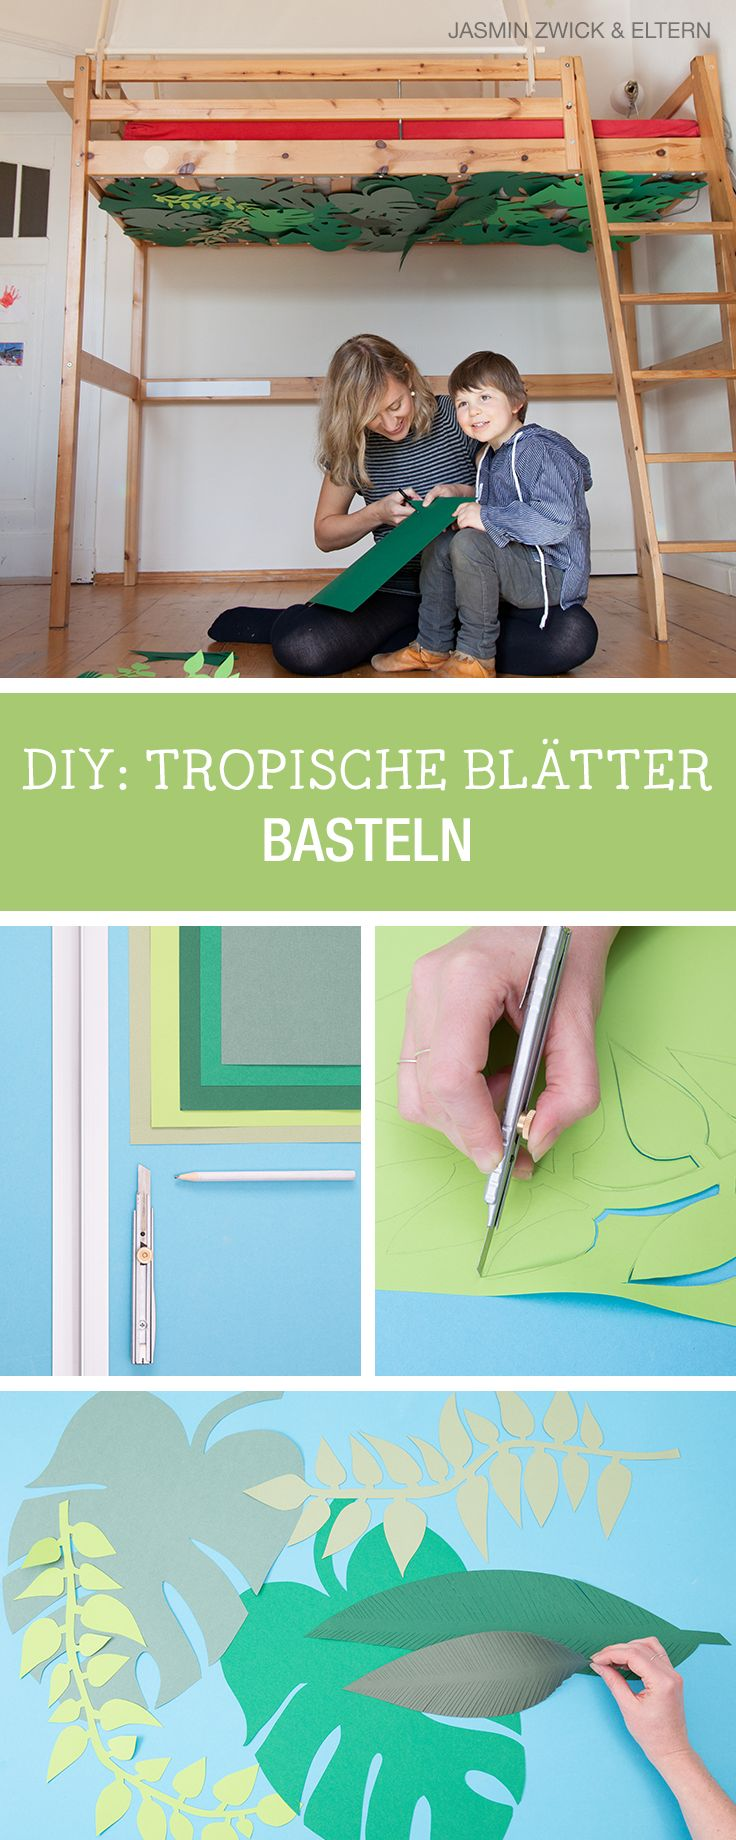 Bastelanleitung: Tropische Blätter aus Papier schneiden, Kinderzimmer verschönern mit Eltern.de / crafting inspiration for the children's room: how to craft tropical leaves via DaWanda.com